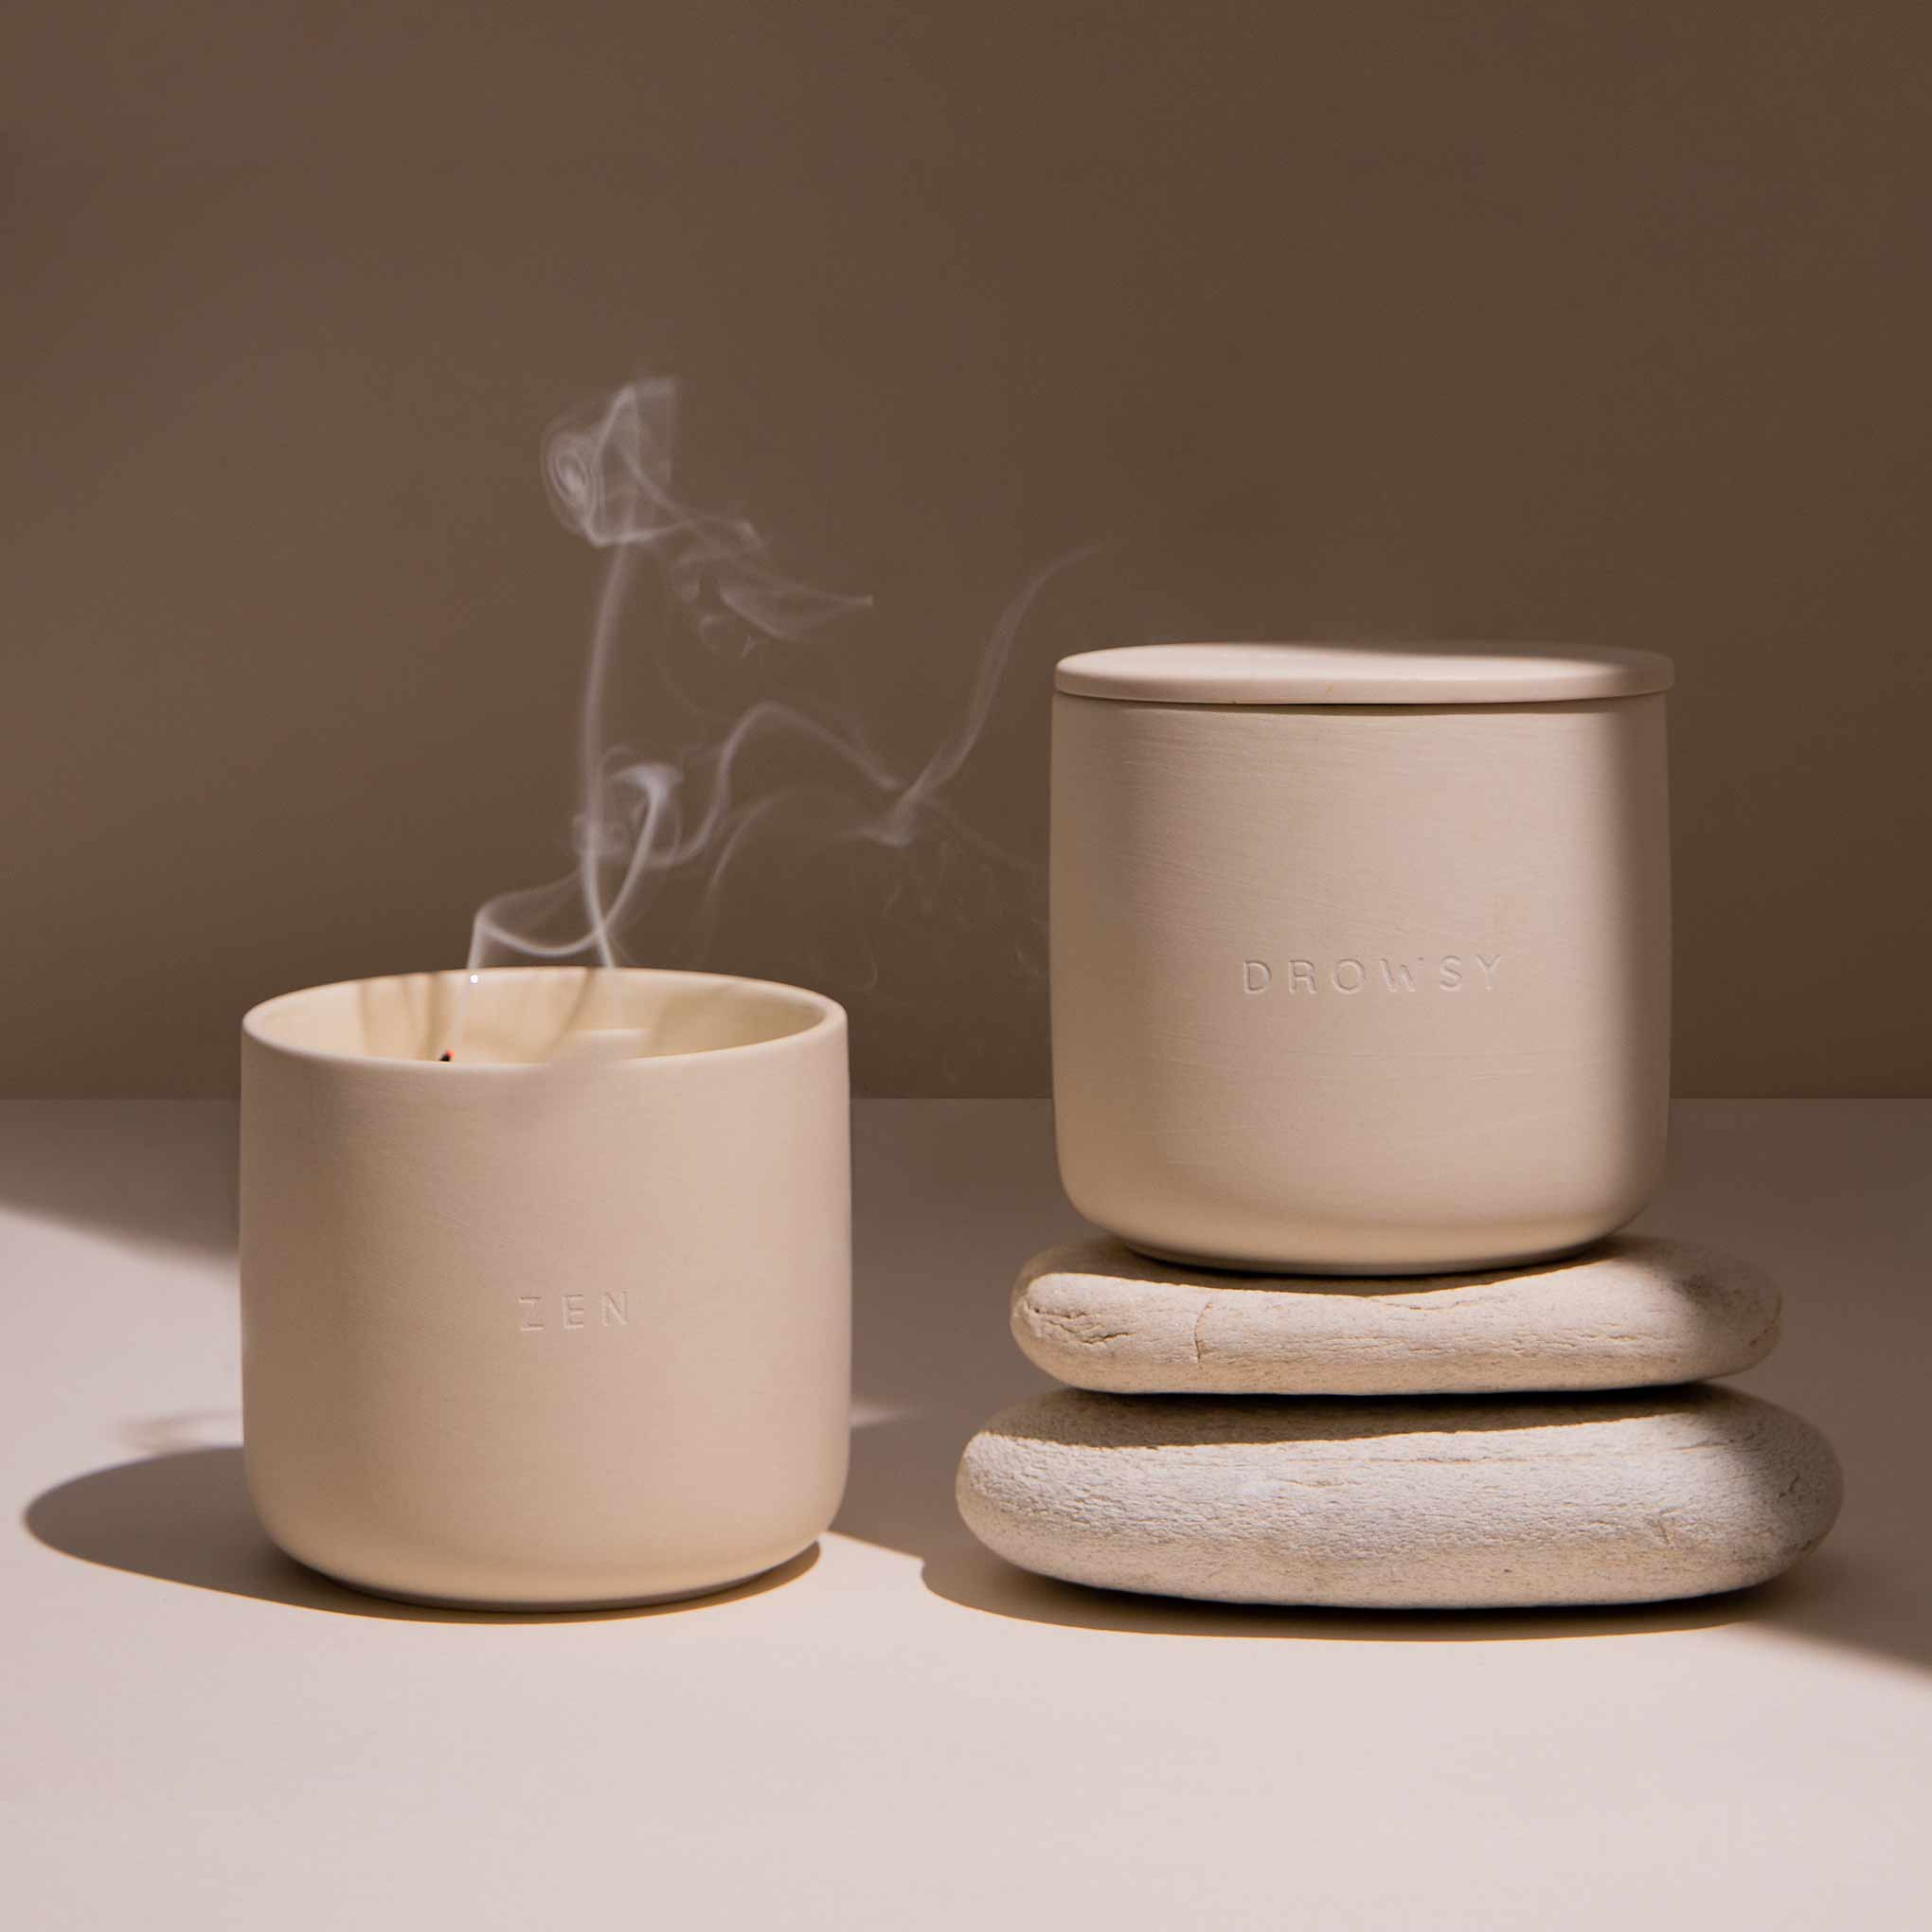 2 Candles in ceramic jars on a cream coloured background. One of them has just been blown out and has smoke gently rising from the wick.